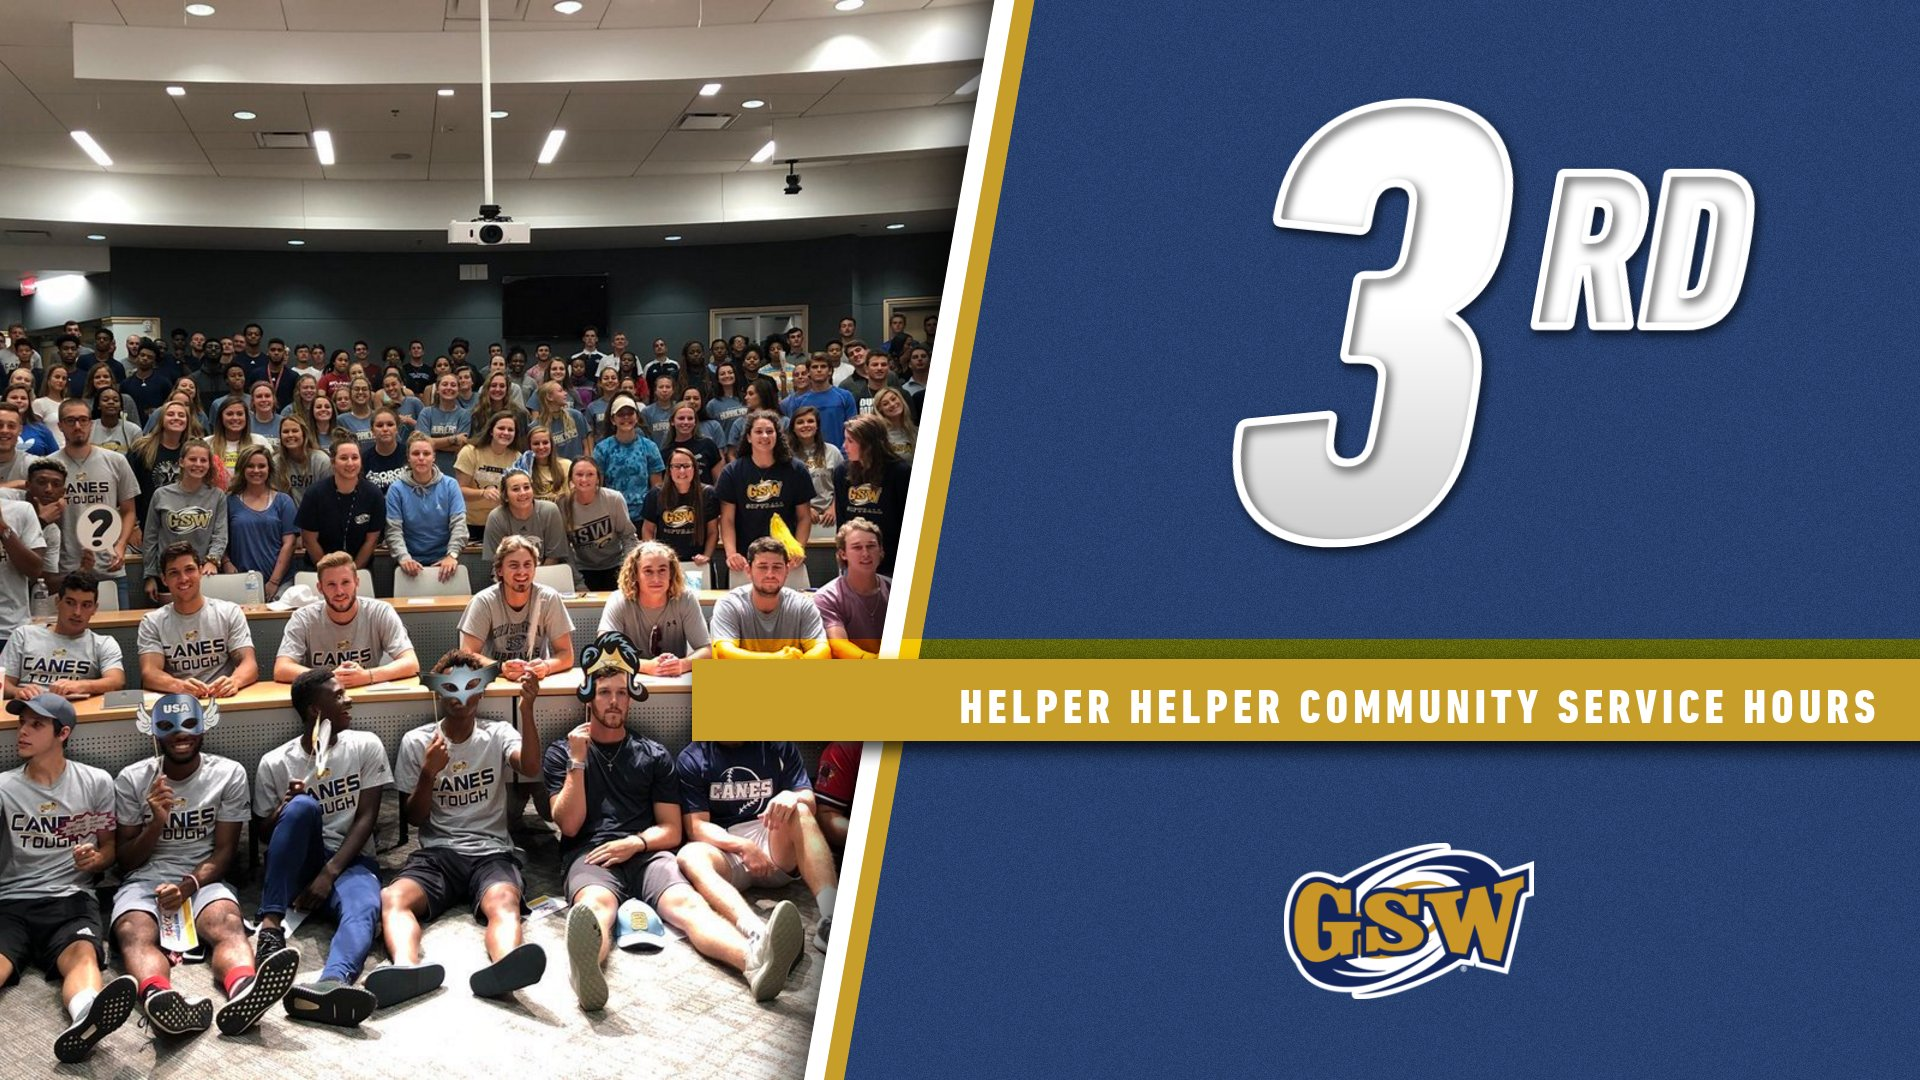 GSW Ranks 3rd in the Country in Community Service Hours